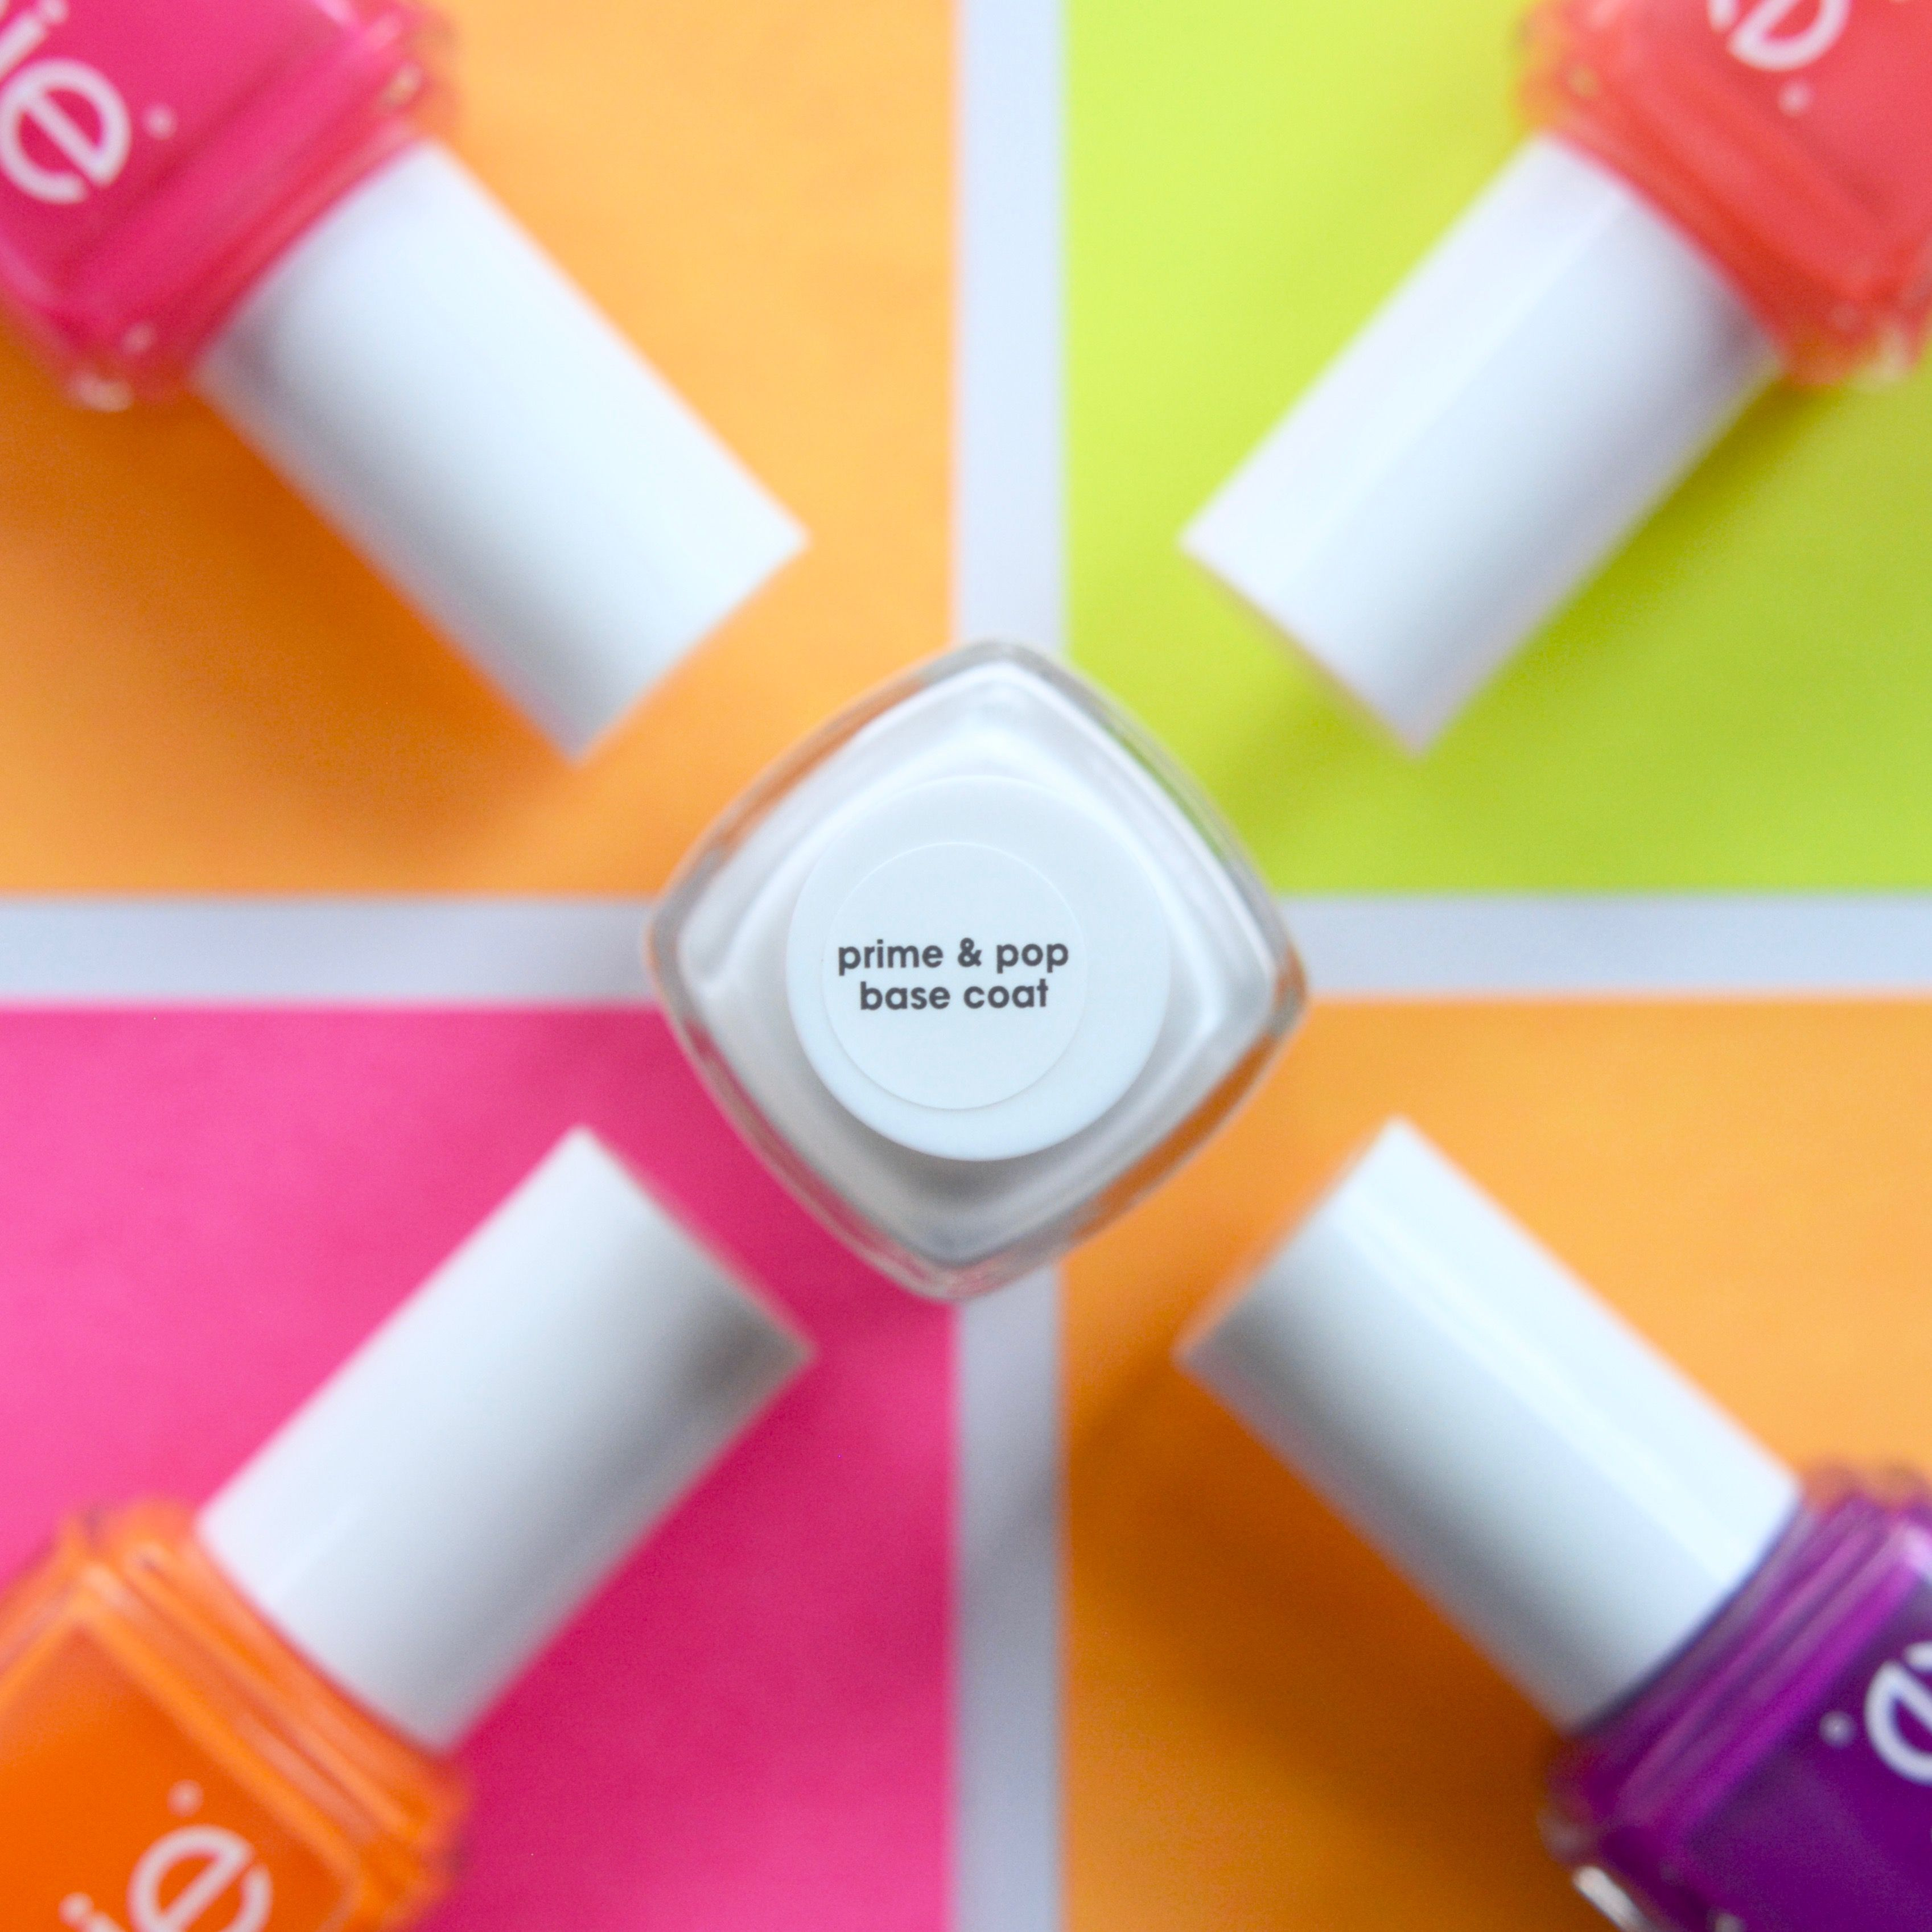 Essie Neon 2017 collection | Manicures & Nail Art - Talonted Lex ...